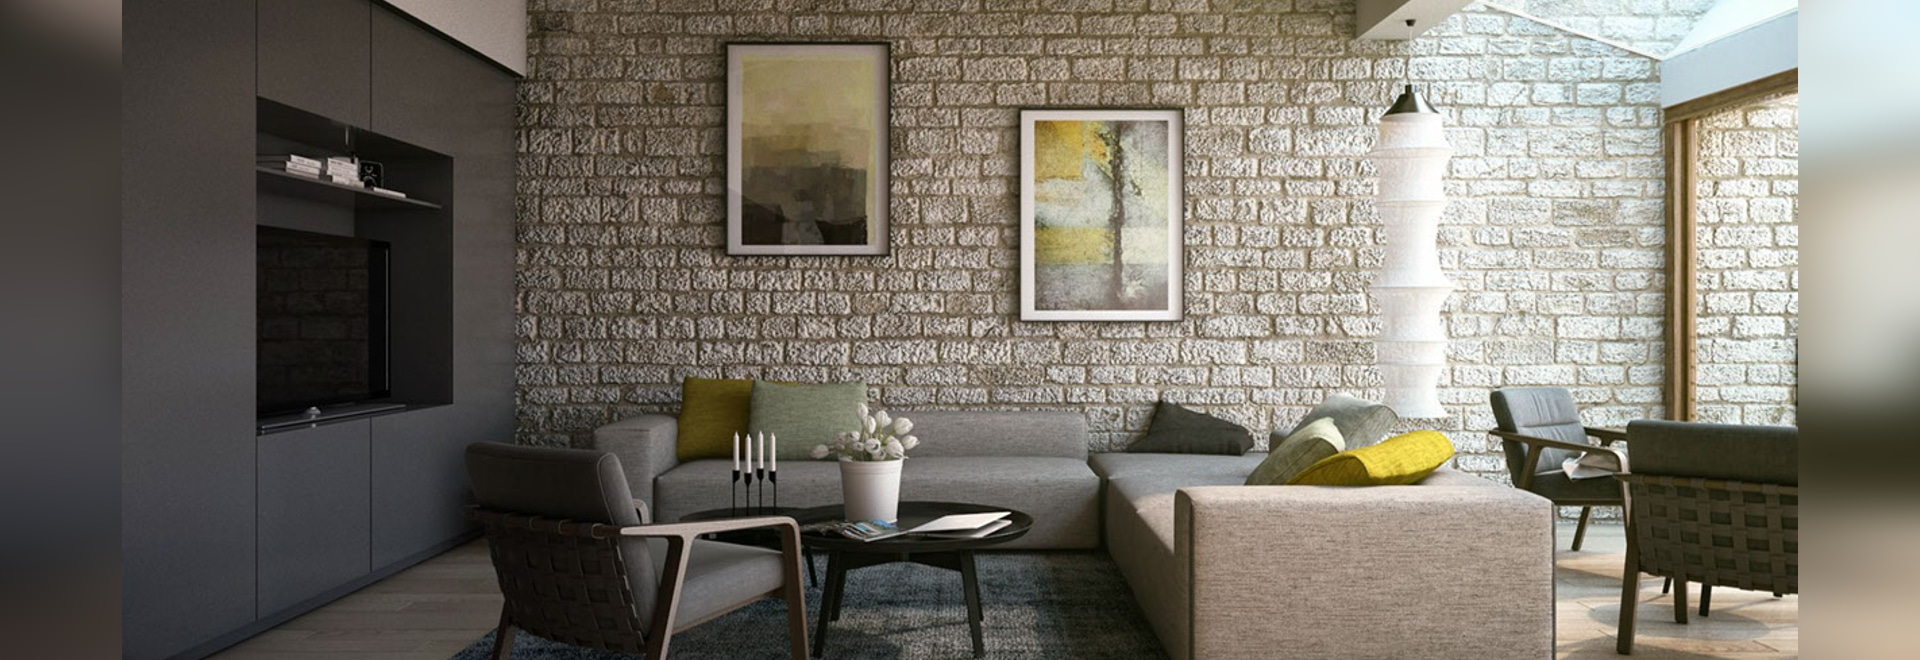 Beau This Classic Stone Wall Treatment Provides An Interesting Contrast To The  Modern Furnishings And Helps To